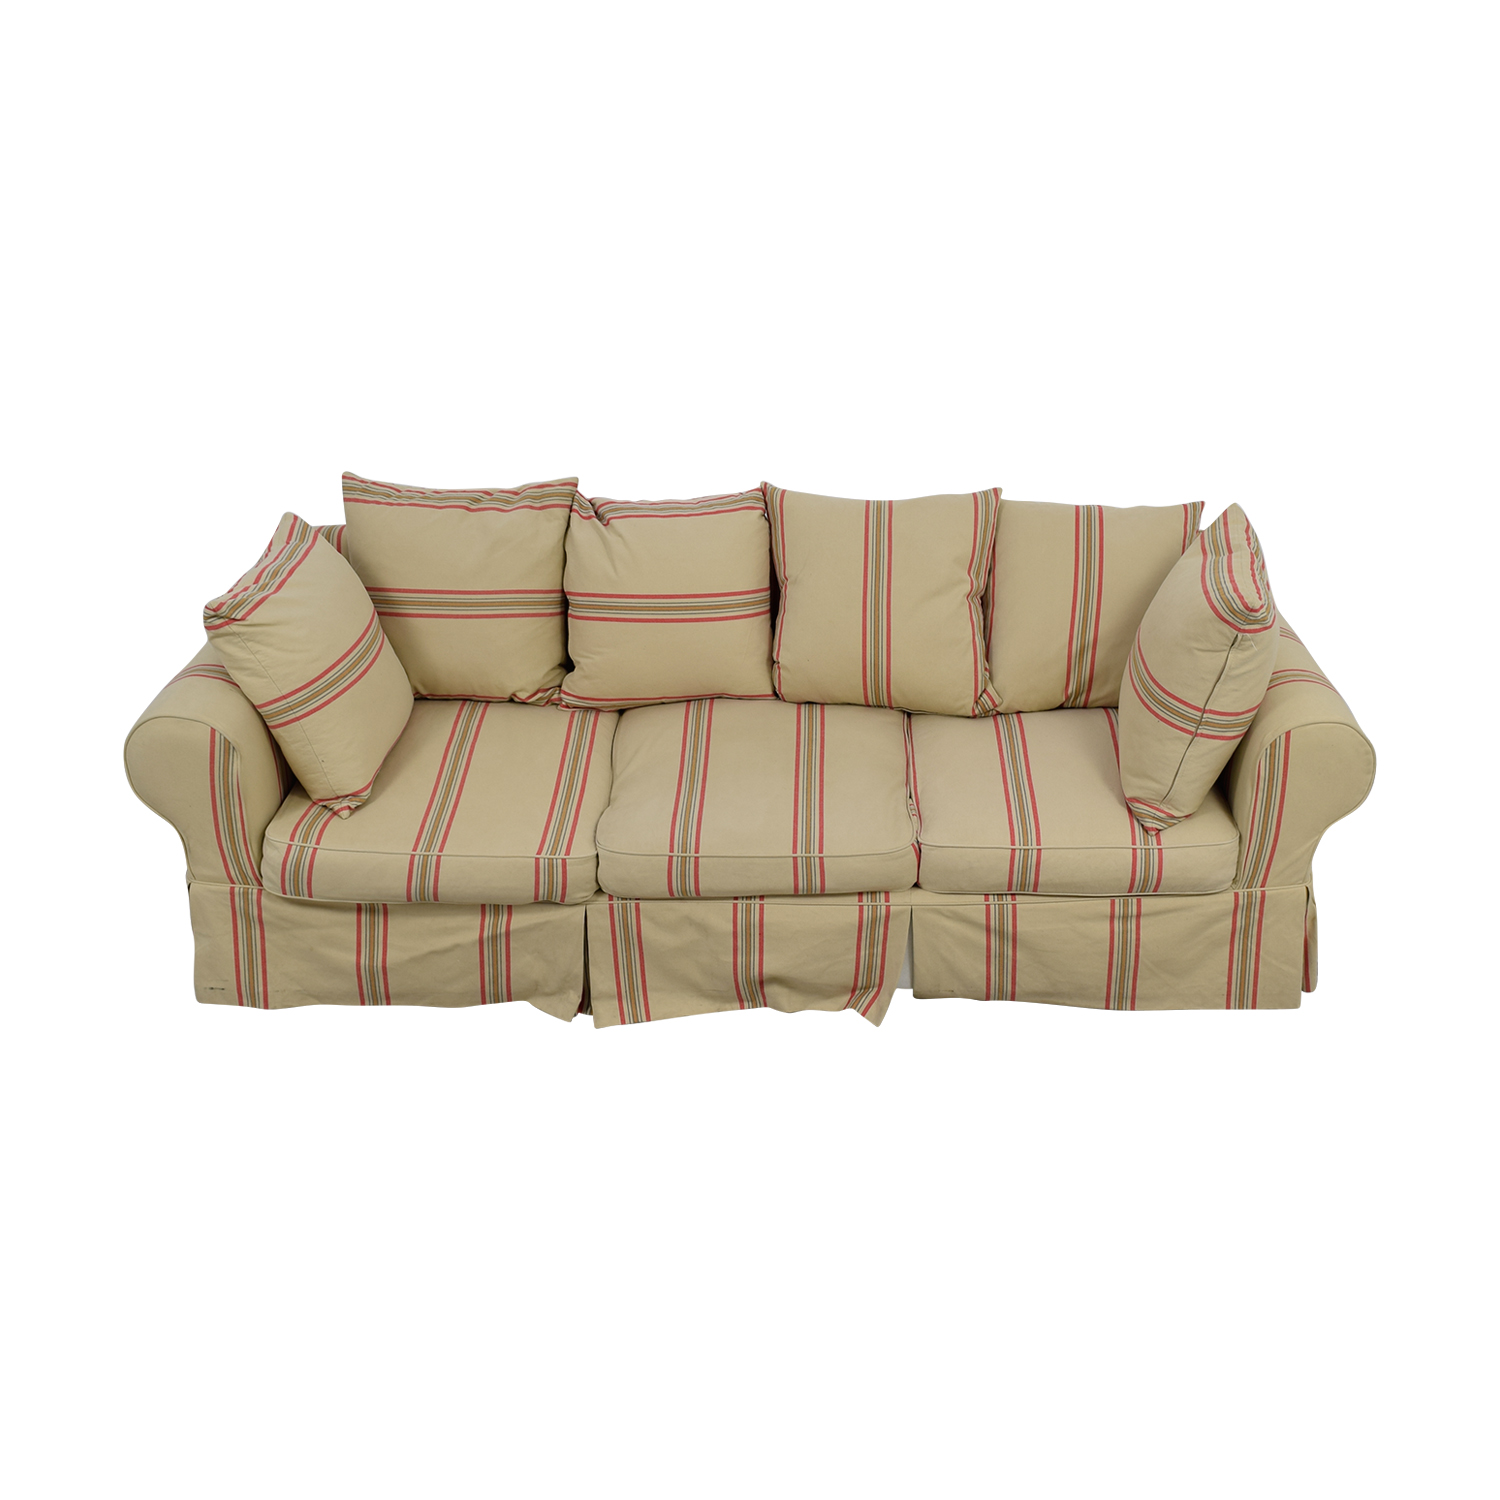 90% OFF - Beige with Red Stripe Three-Cushion Slipcover Sofa / Sofas